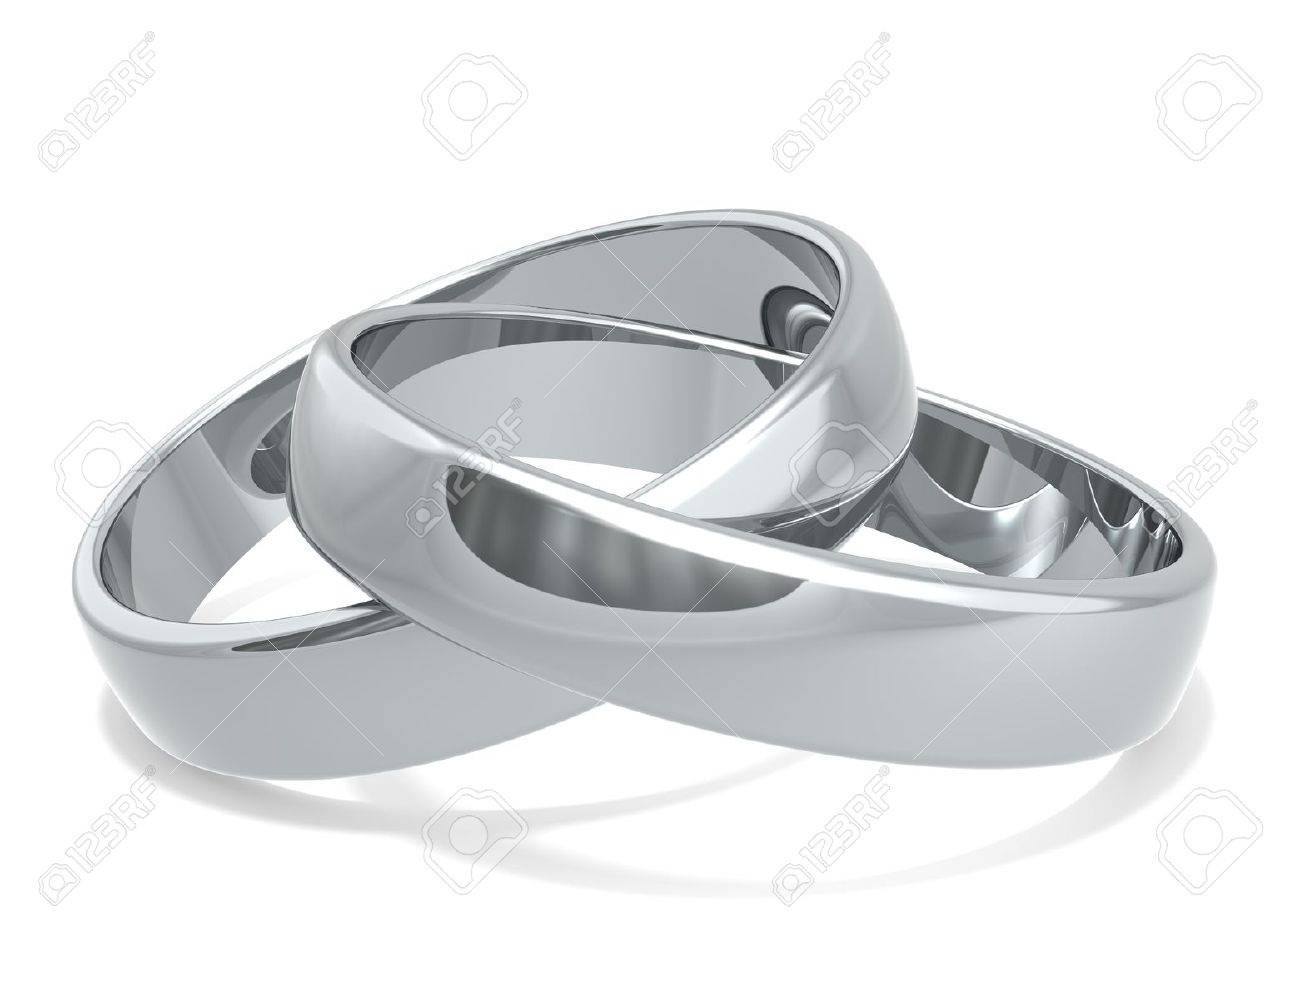 New Silver Wedding Anniversary Rings Photo Gallery – Alsayegh Inside Most Current 25 Year Wedding Anniversary Rings (View 8 of 25)